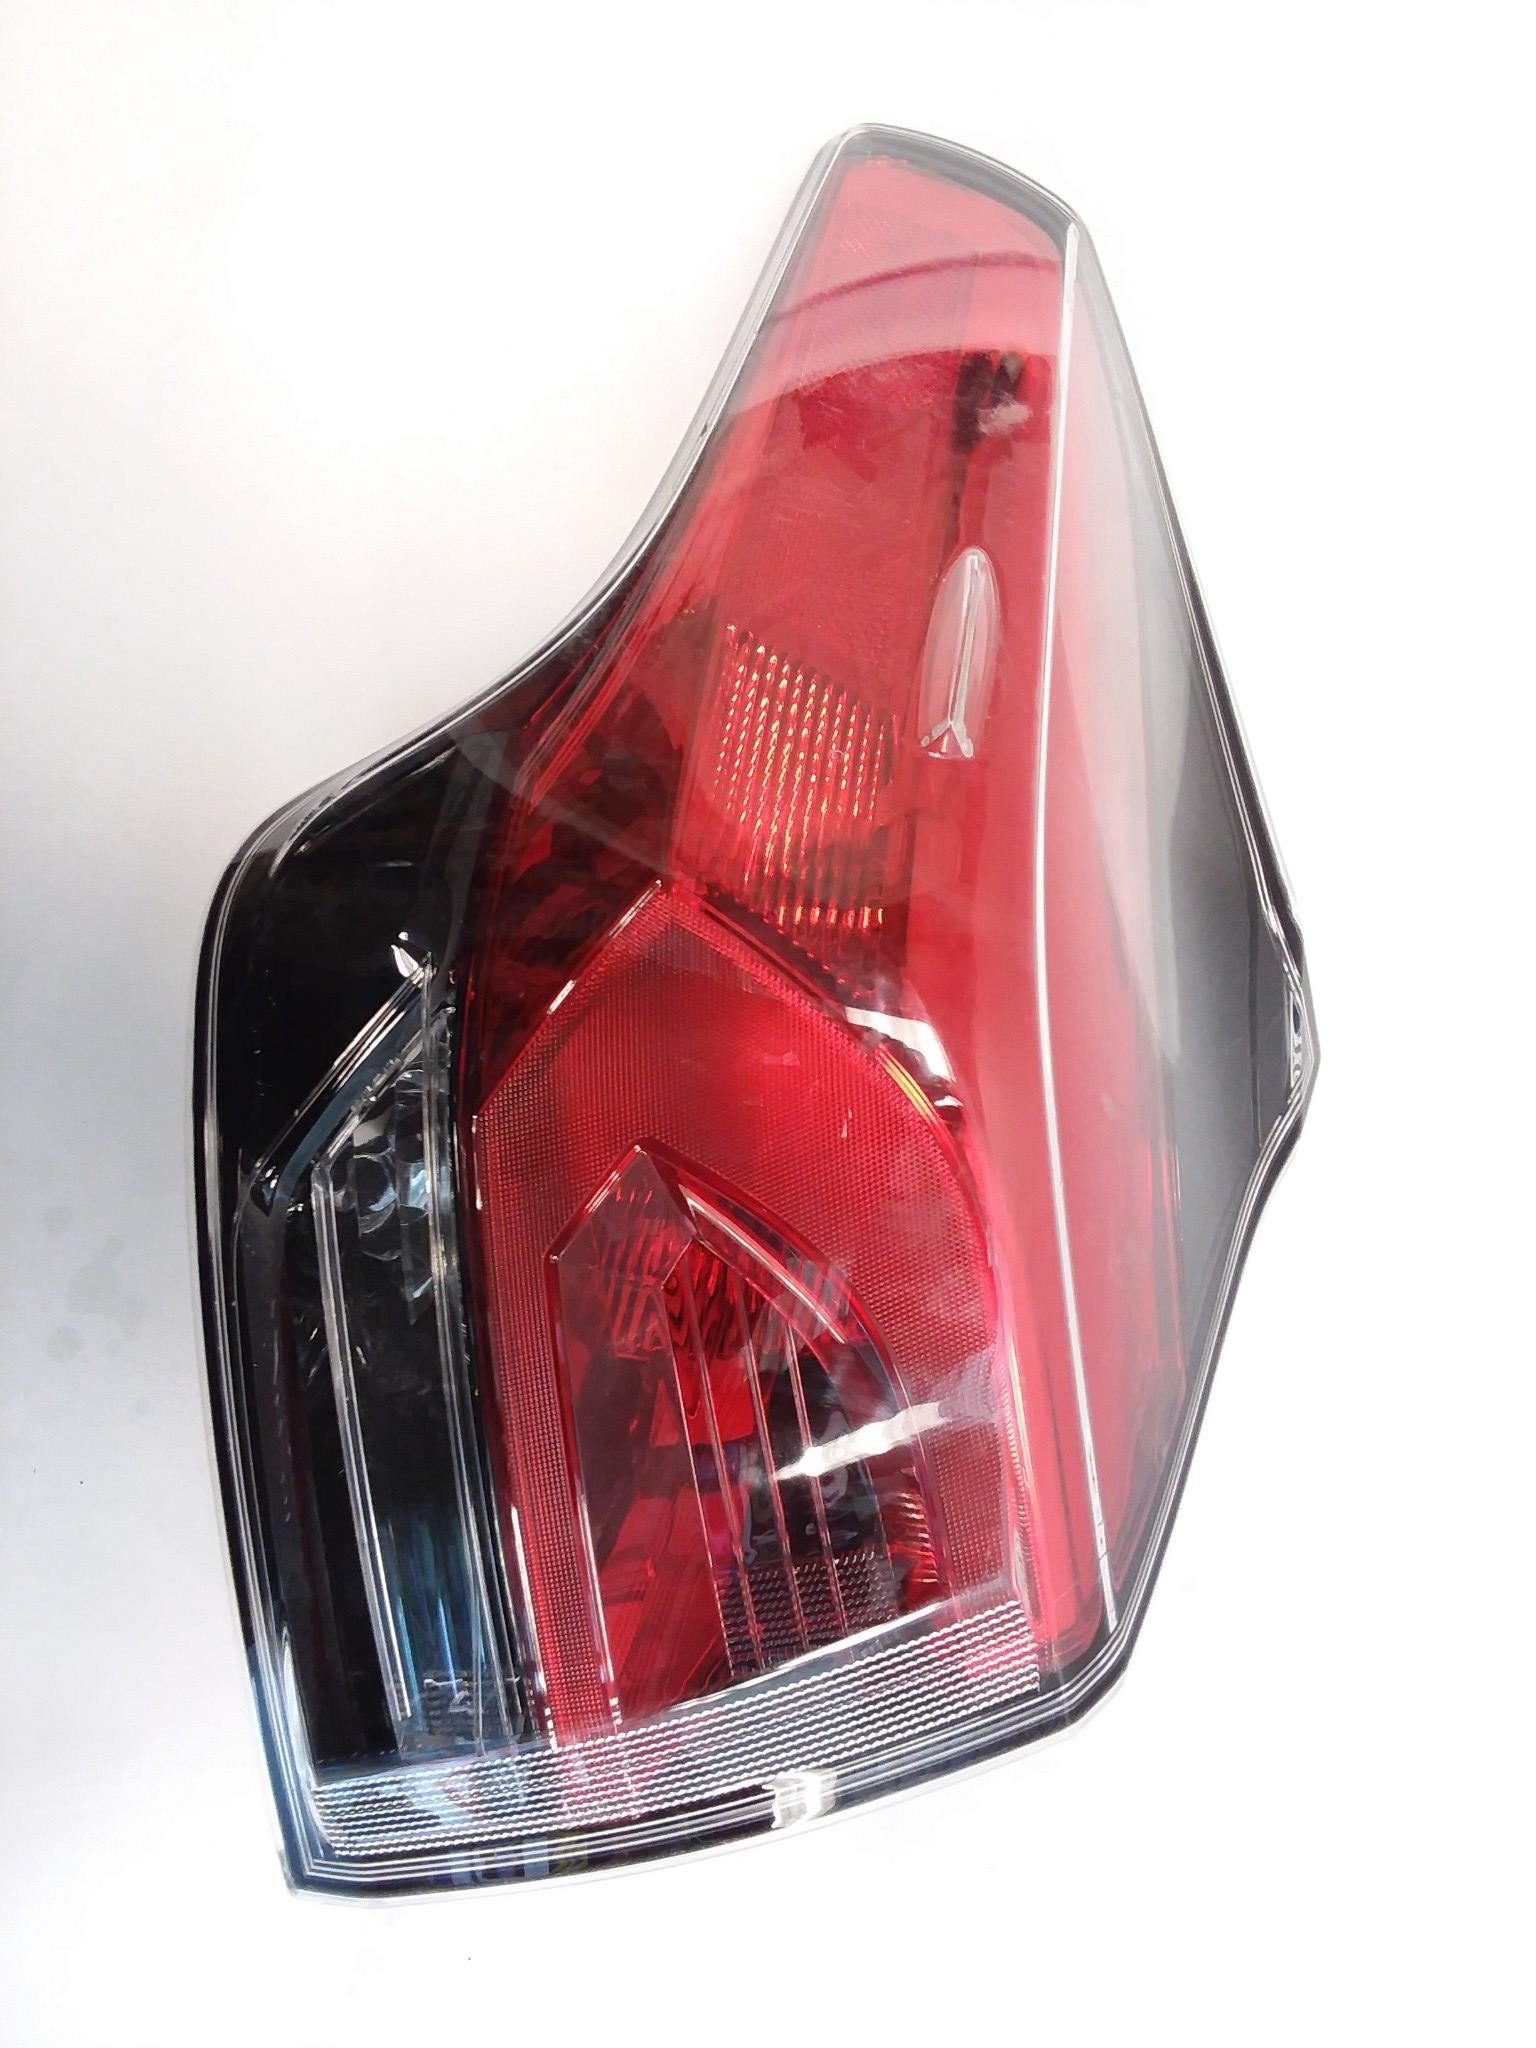 2016 2017 2018 Toyota Rav4 Rear Left Driver Tail light 81560-42211 OEM 16 17 18